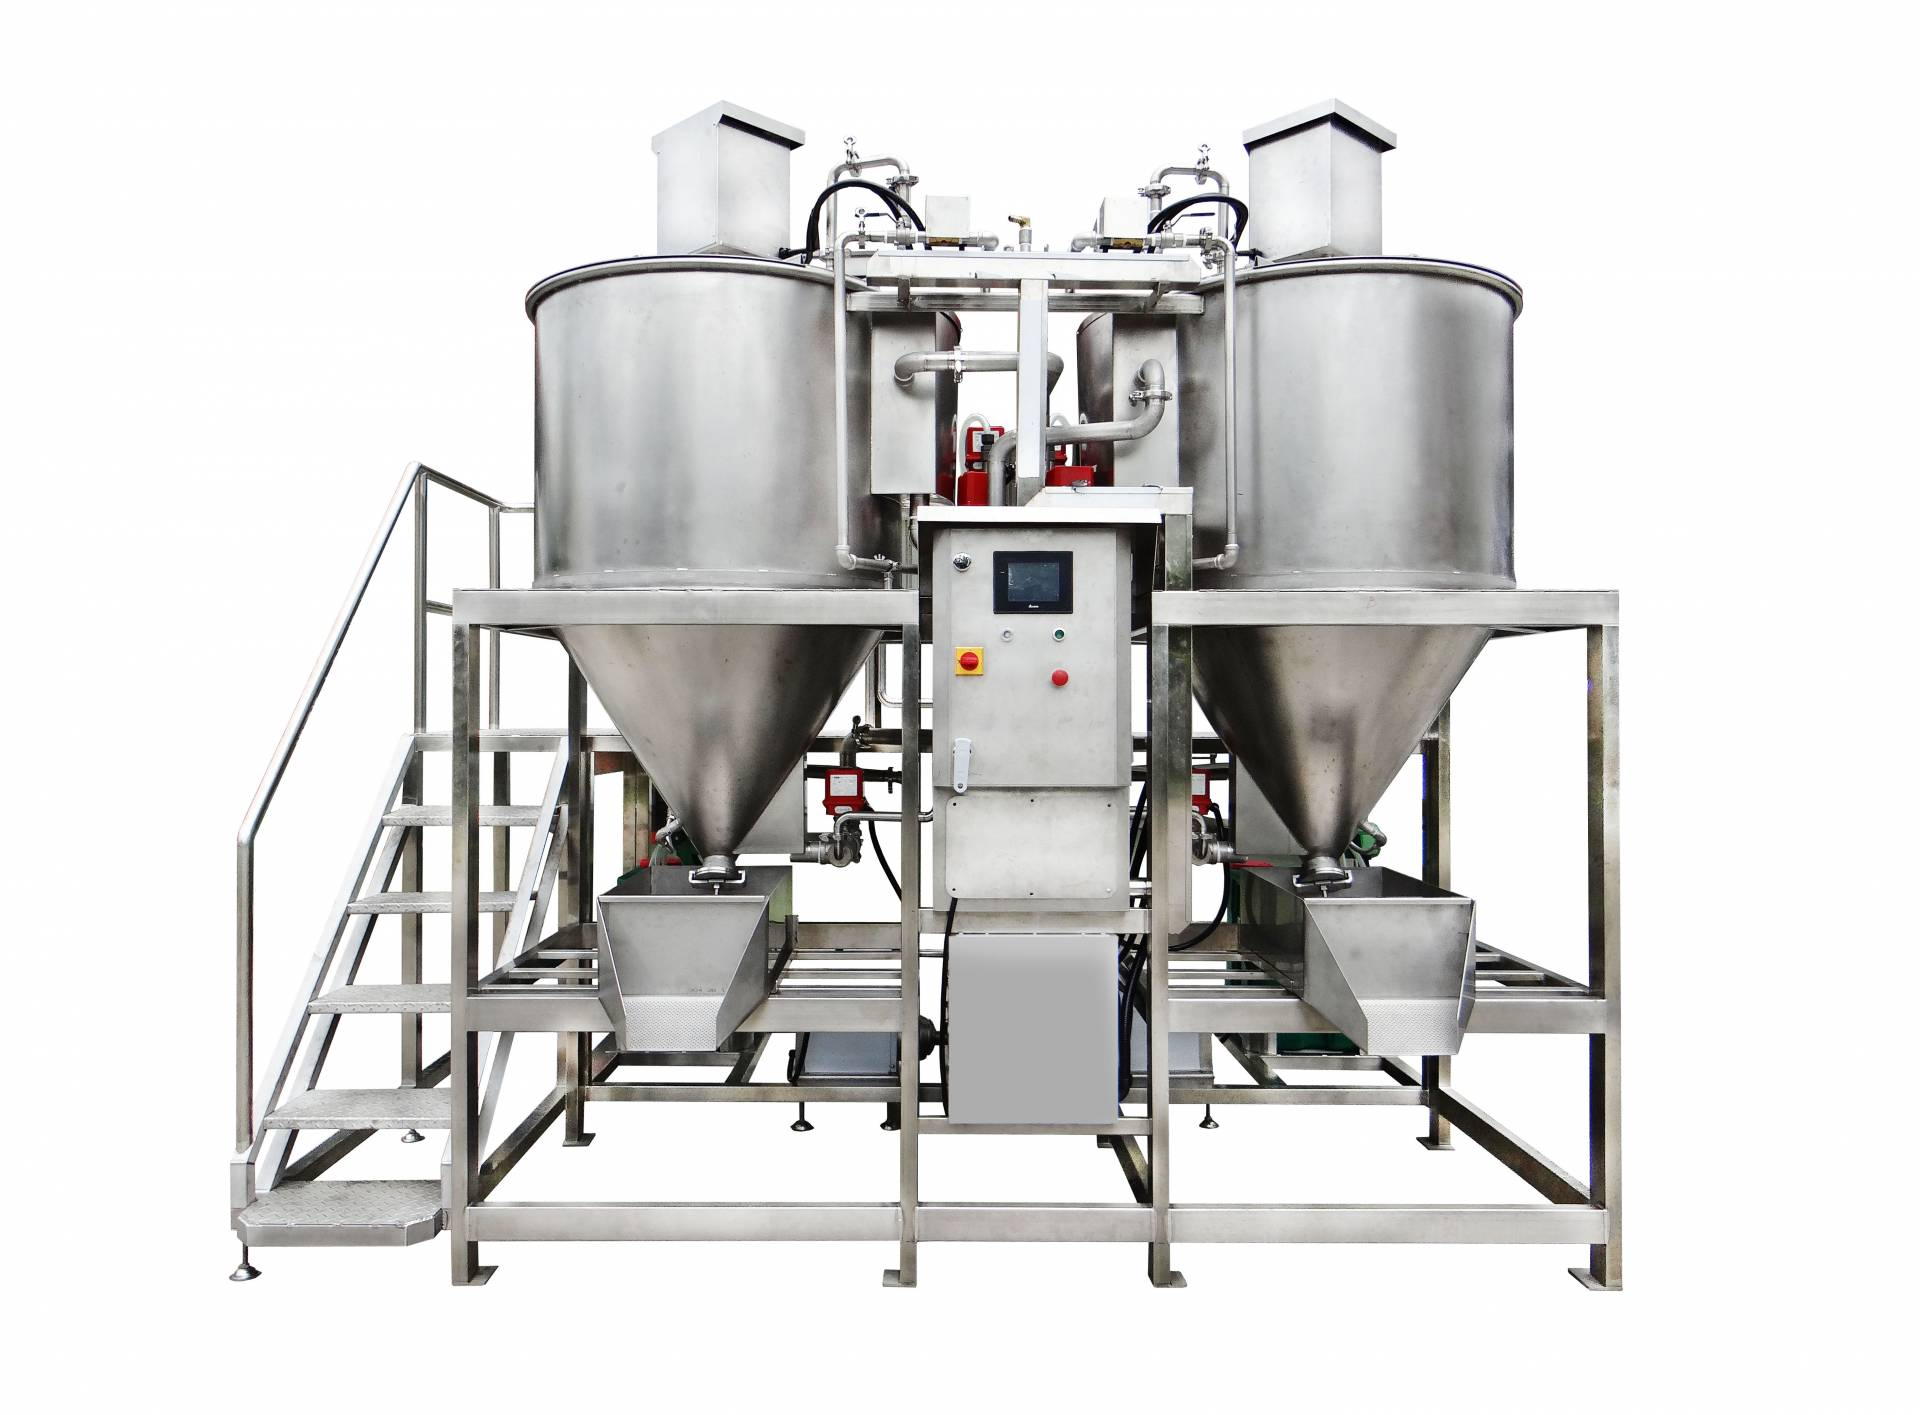 Bean Washing and Sterilizing System - Bean Washing and Sterilizing Machine